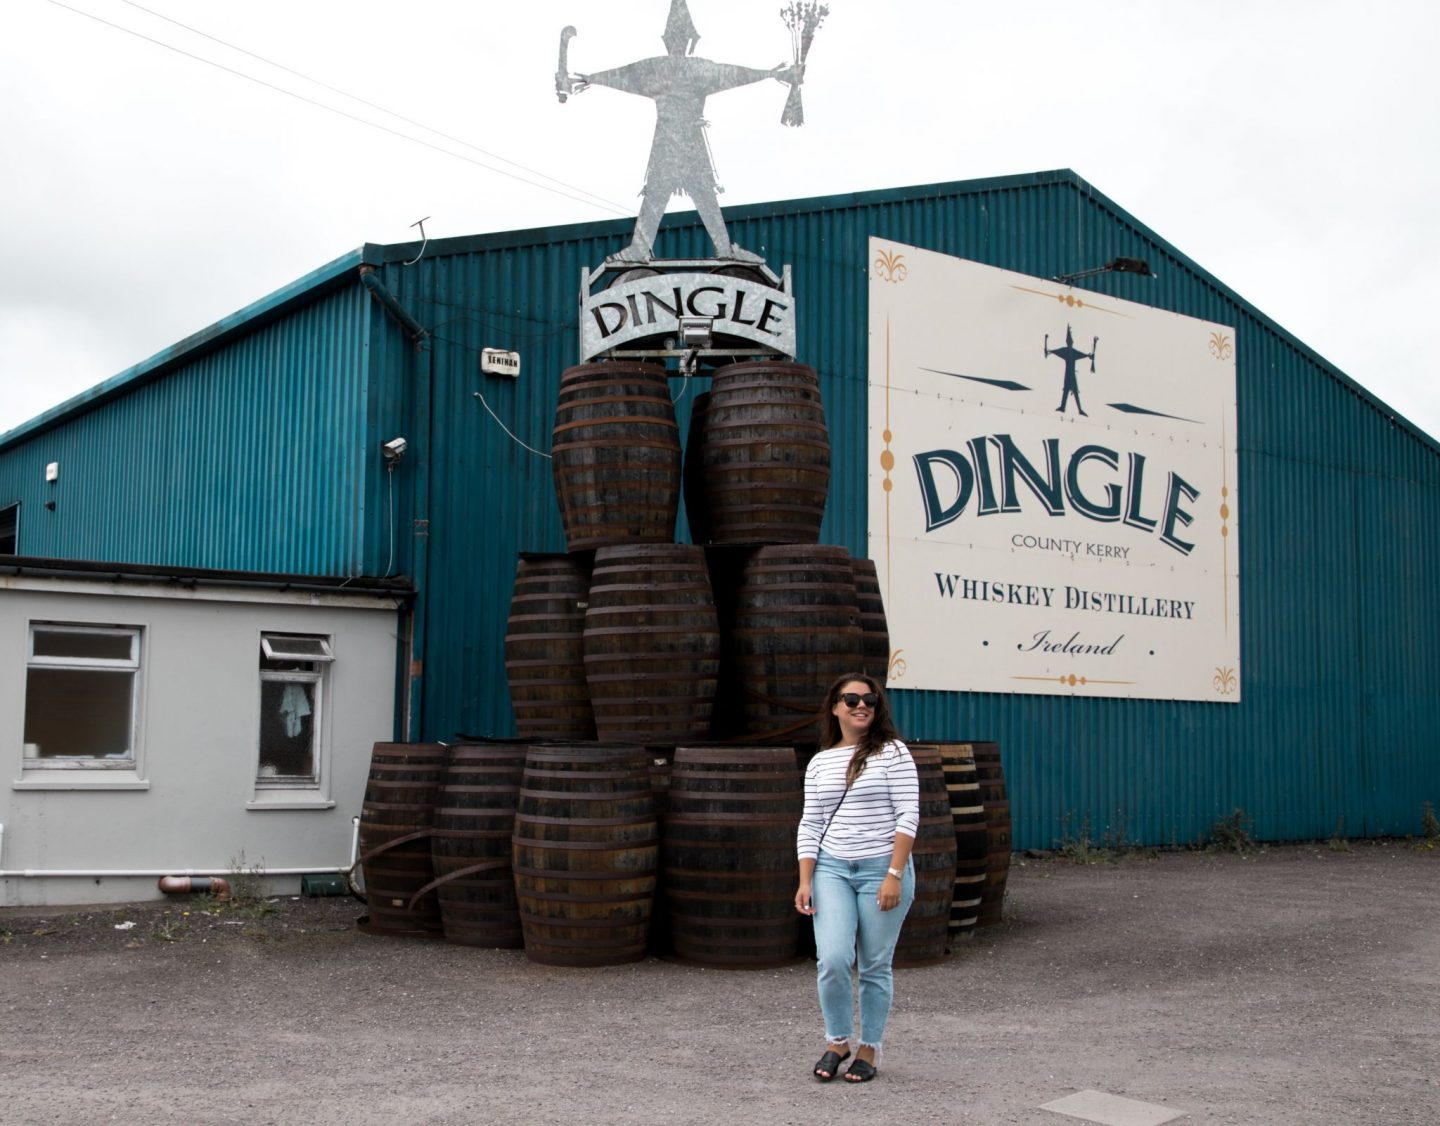 A Weekend in Dingle, Co. Kerry, Ireland. Wild Atlantic Way. Nadia El Ferdaoussi travel writer the daily s'elf Dingle gin vodka whiskey distillery